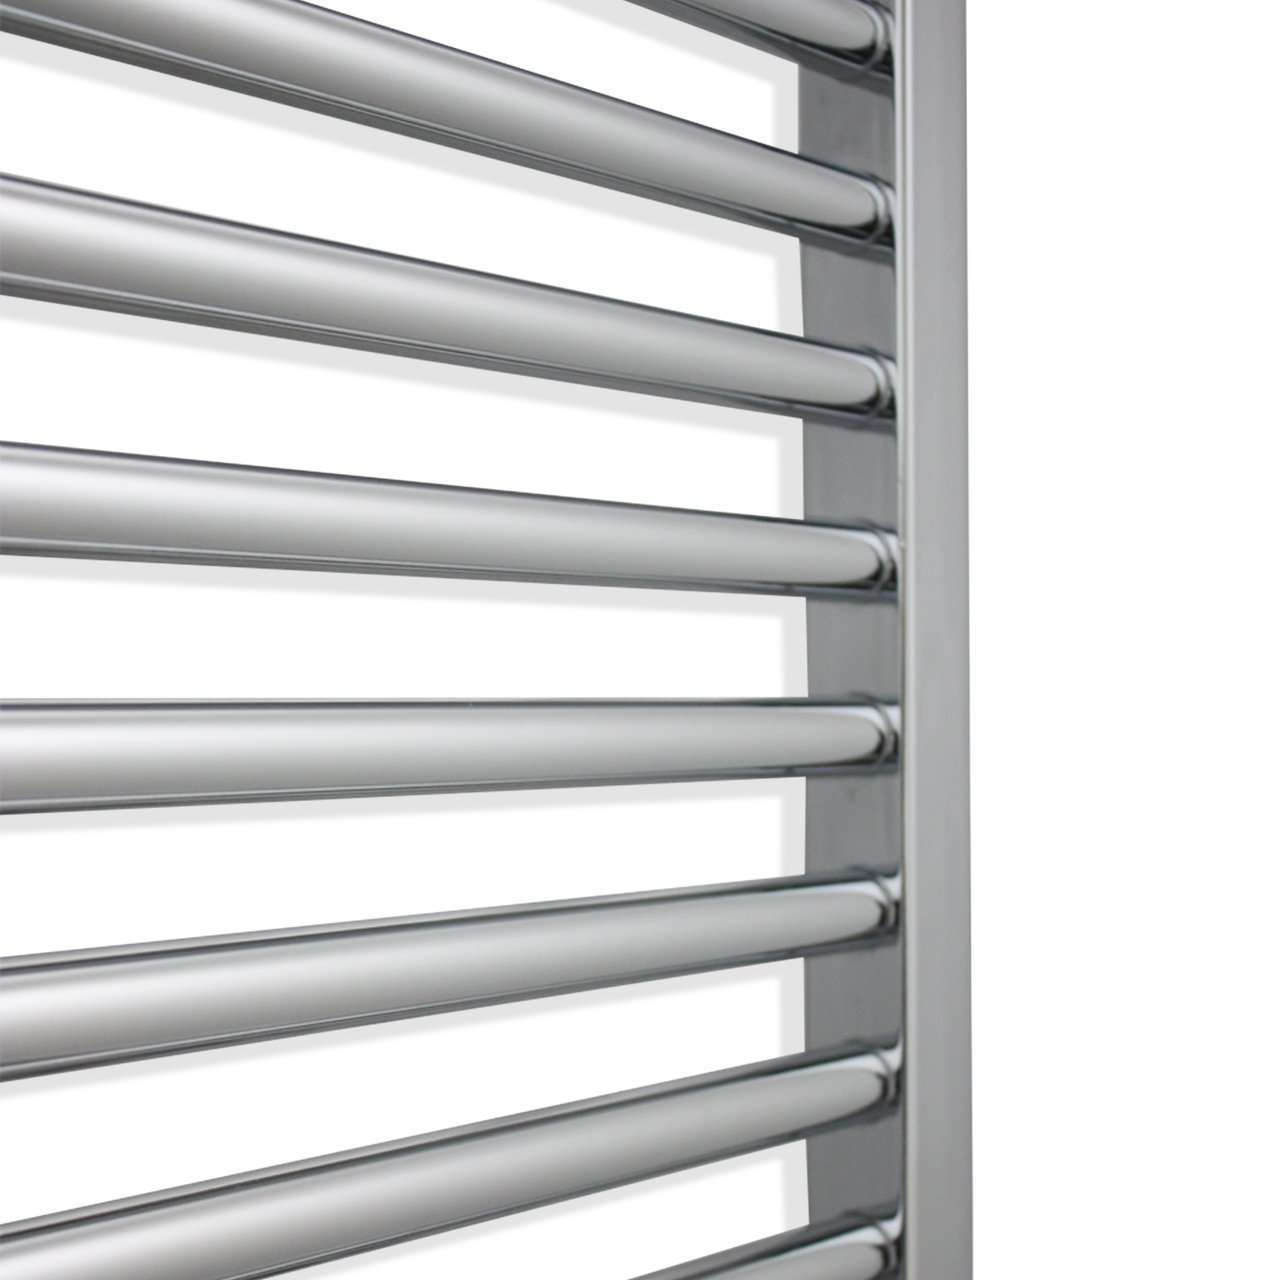 700mm Wide 600mm High Flat Chrome Heated Towel Rail Radiator HTR